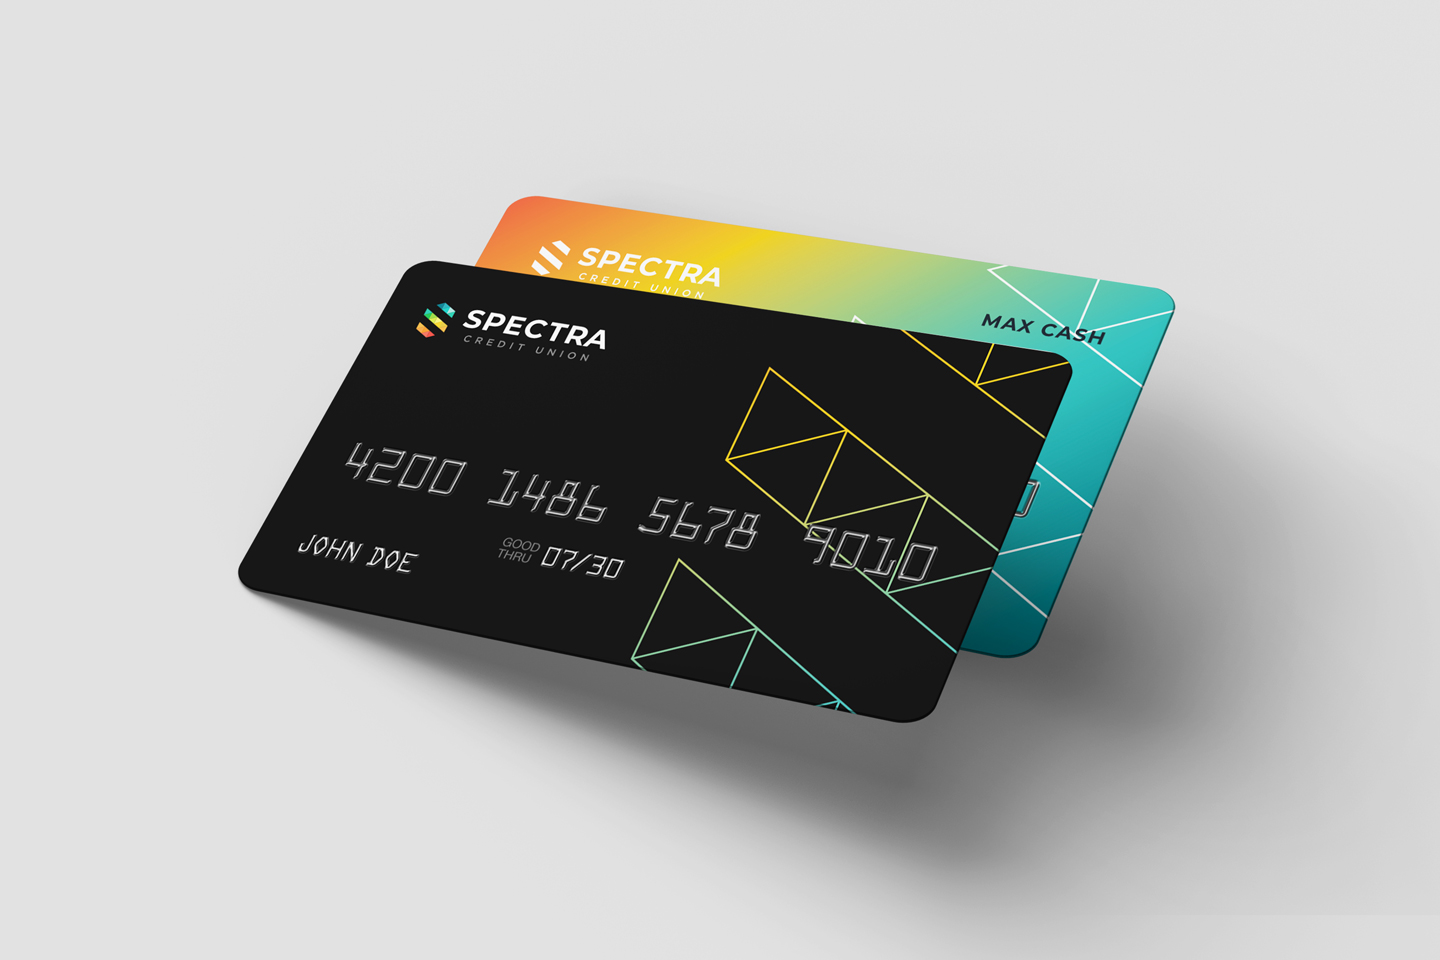 Spectra Credit Union credit and debit cards